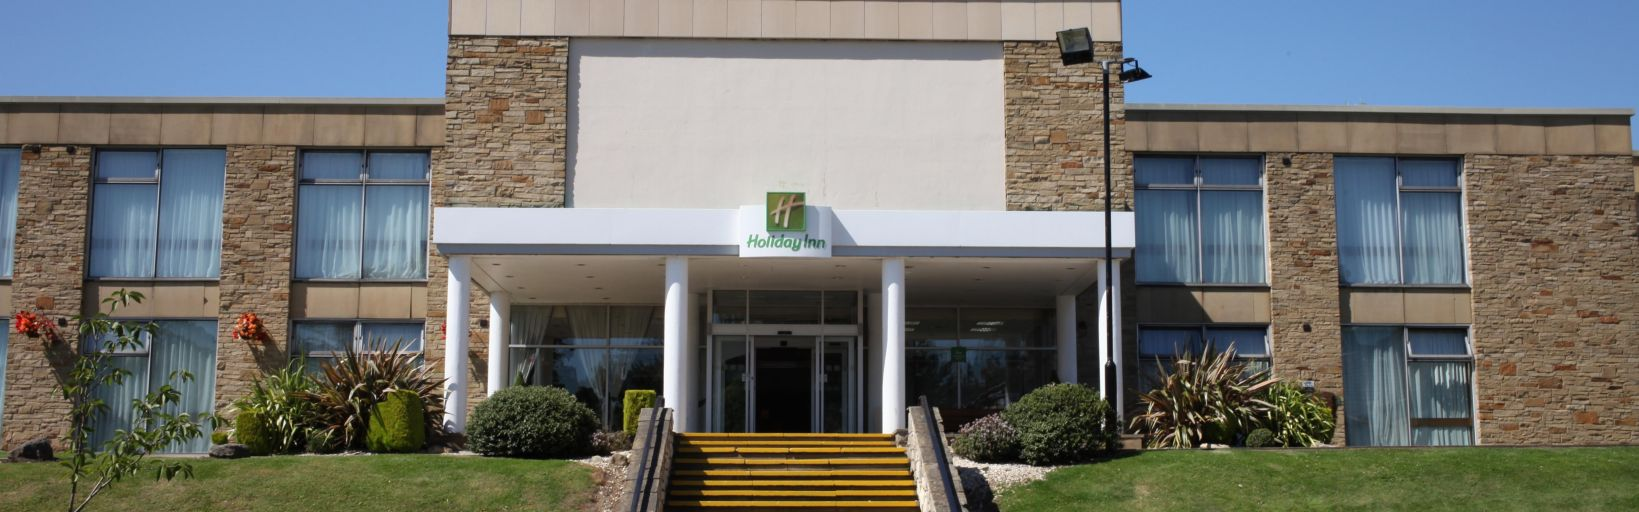 holiday inn doncaster a1 m jct 36 hotel by ihg